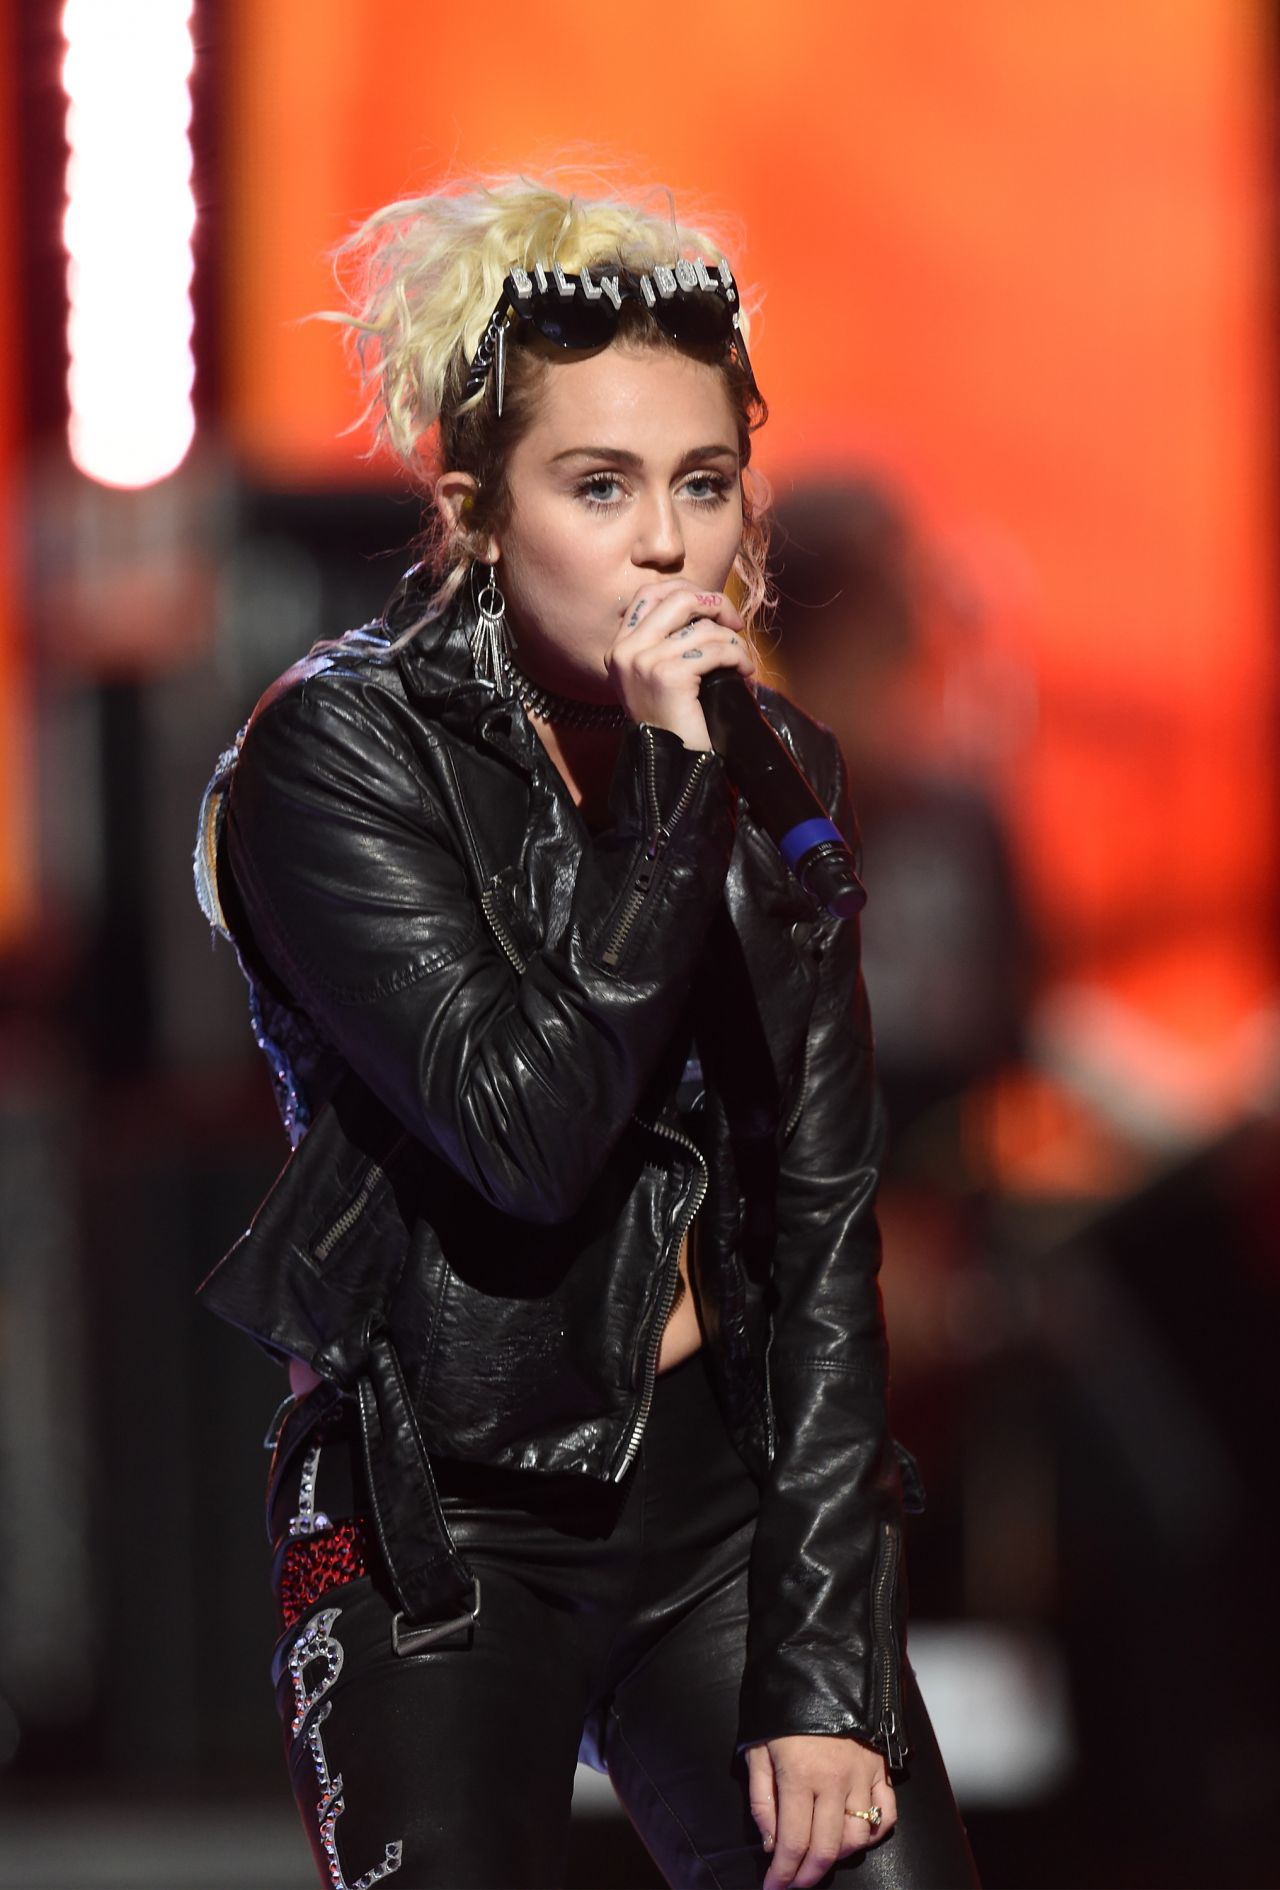 Miley Cyrus Duet With Billy Idol At The 2016 Iheartradio